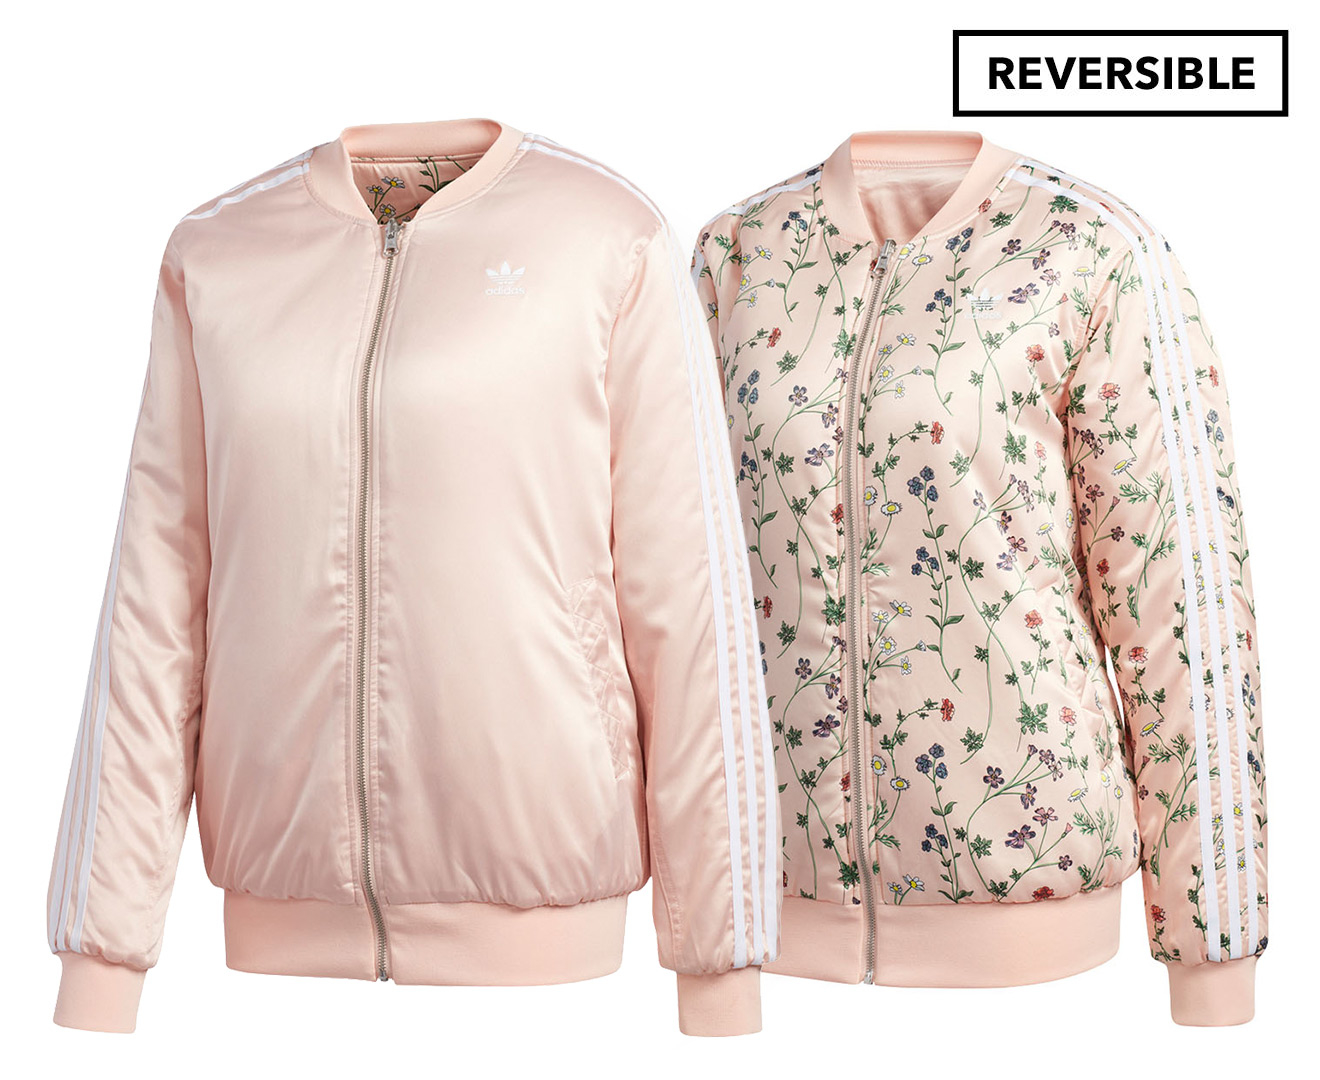 Details about Adidas Originals Women's Printed Reversible Bomber Jacket Pink